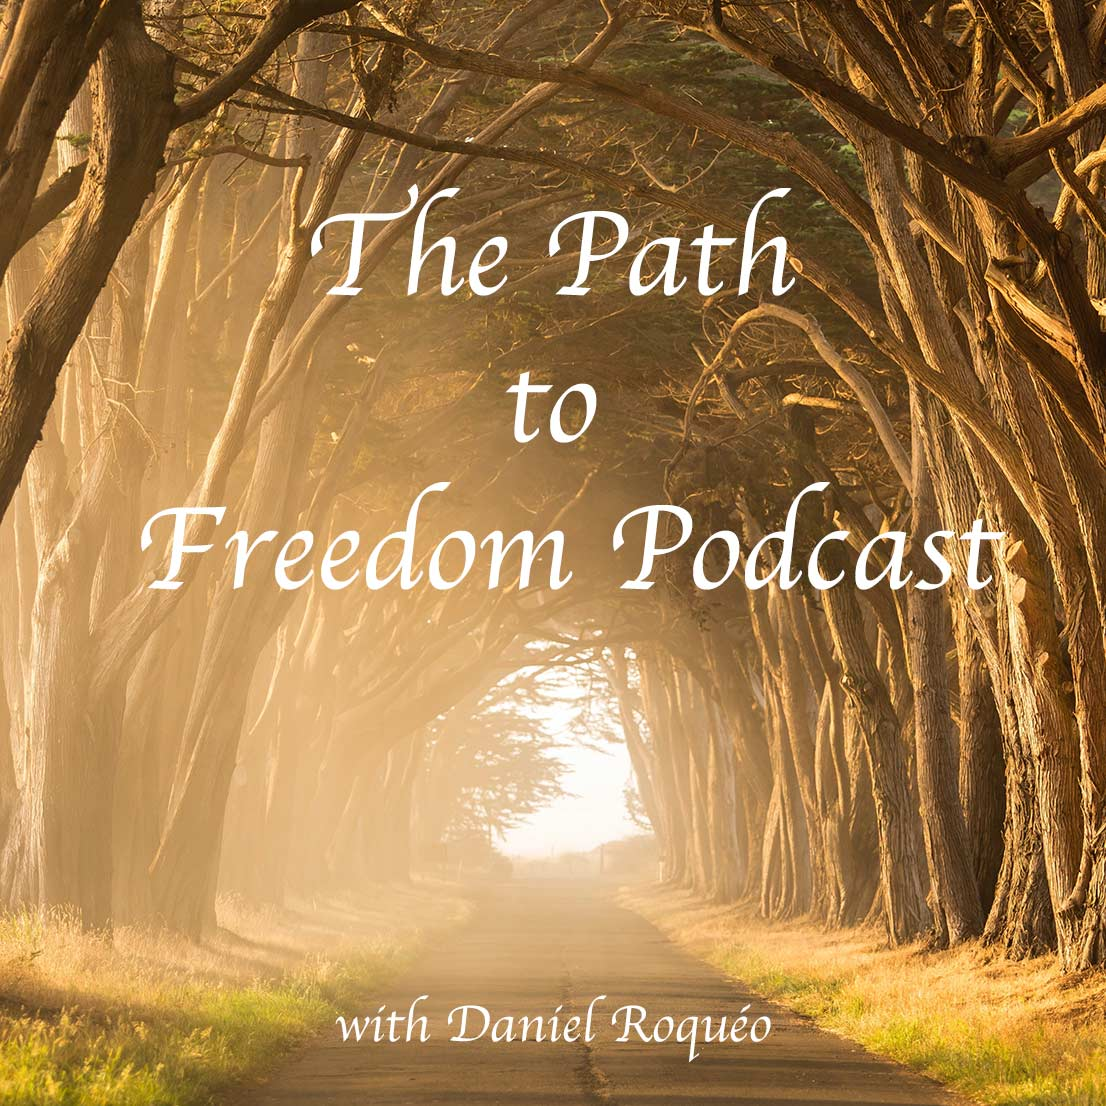 The Path to Freedom Podcast